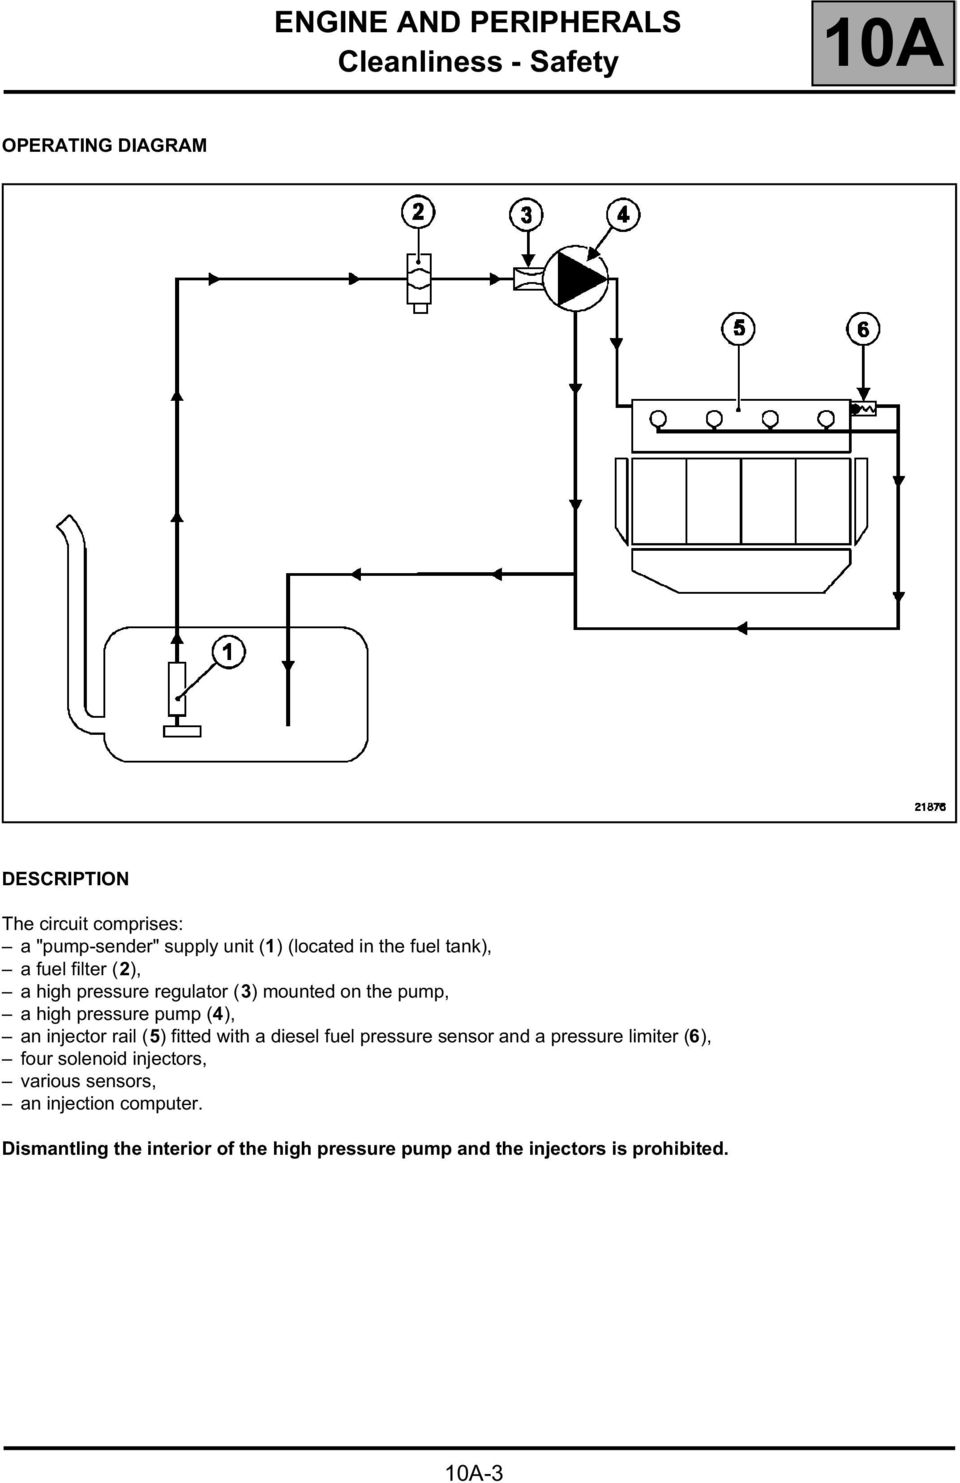 Workshop Repair Manual Pdf Baja Motorsports Wiring Diagram Injector Rail 5 Fitted With A Diesel Fuel Pressure Sensor And Limiter